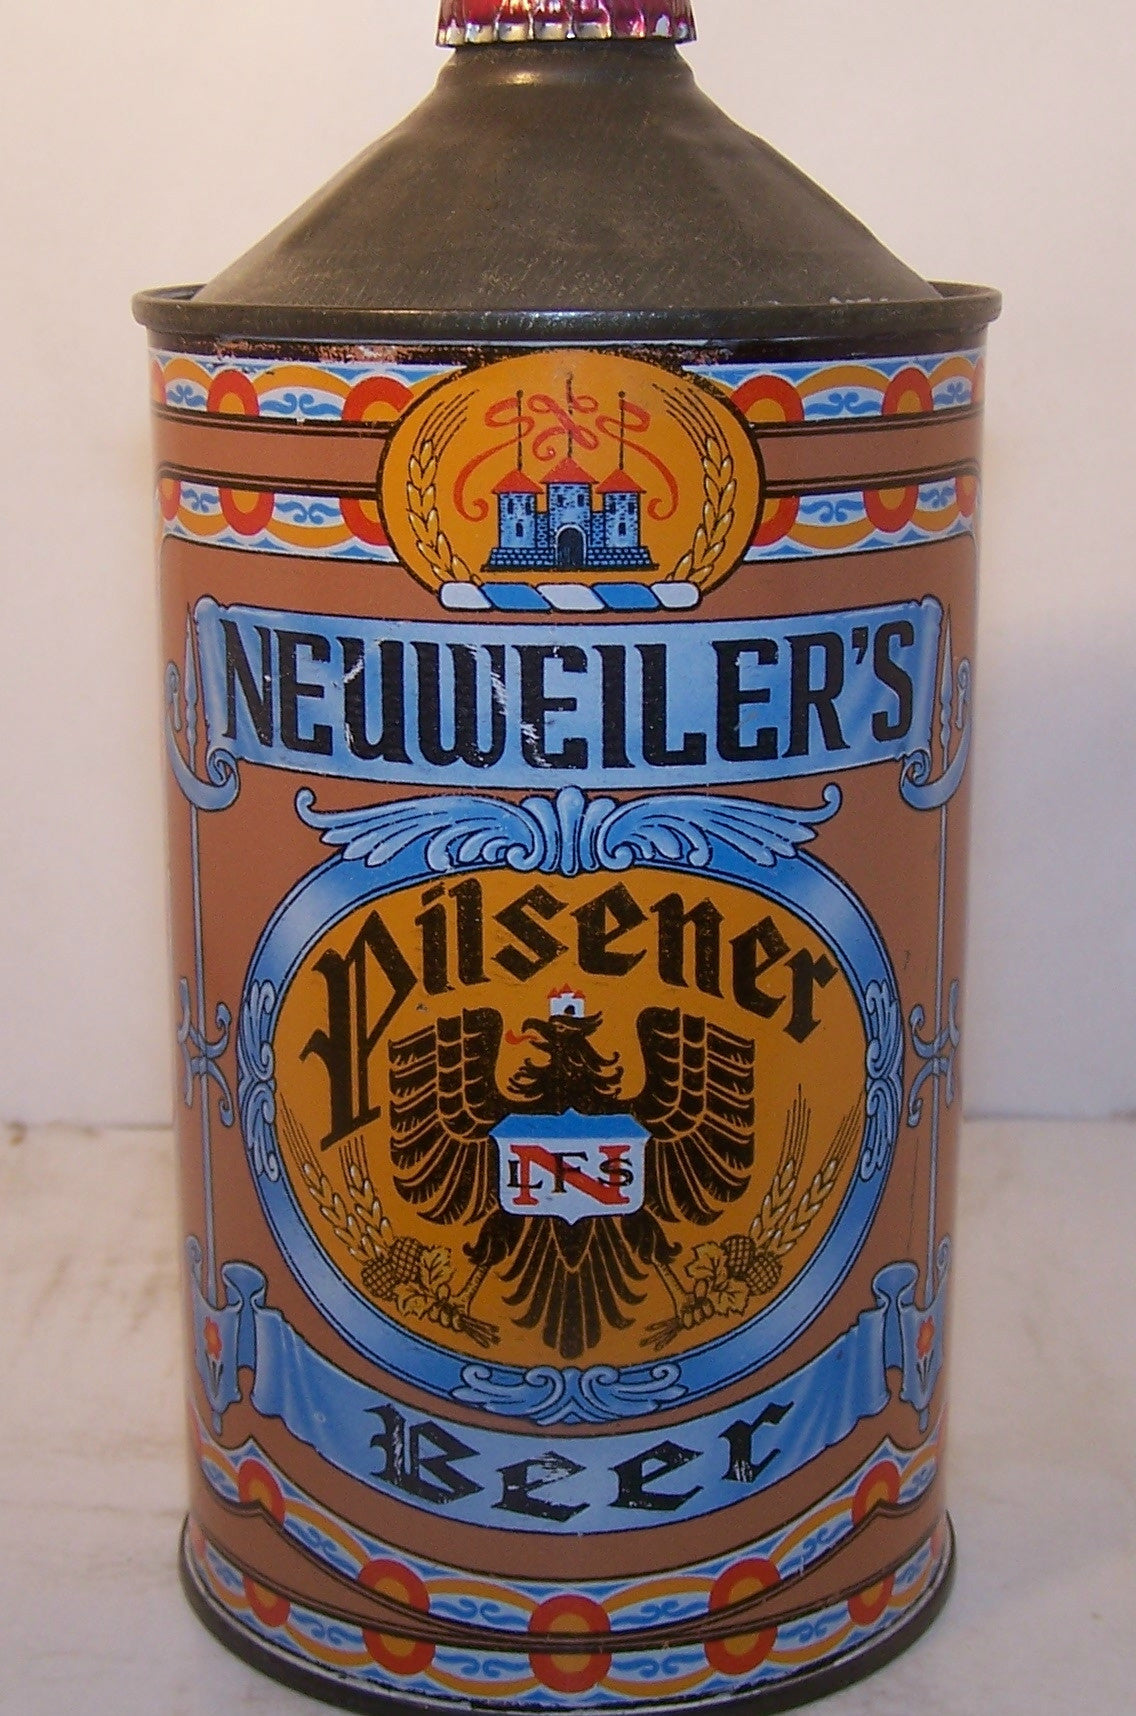 Neuweiler's Pilsener Beer, USBC 215-13, Grade 1 to 1/1+ Sold on 10/08/15